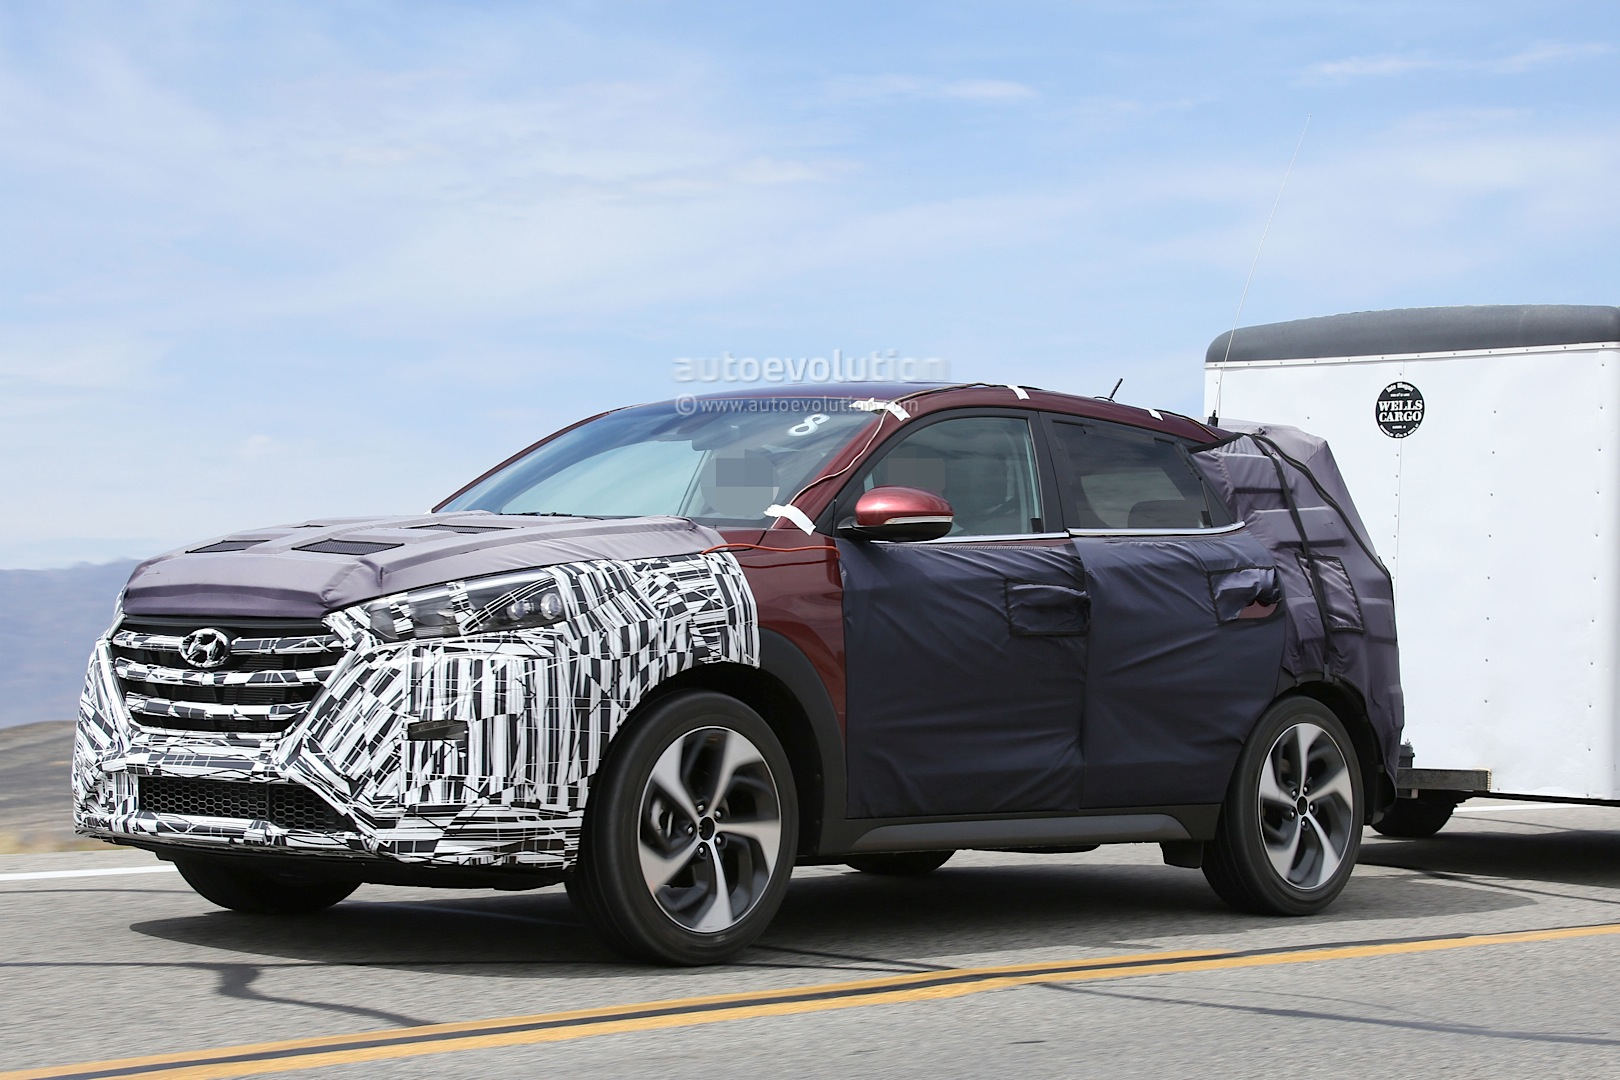 All New 2016 Hyundai Tucson Spied With Less Camouflage In America Autoevolution